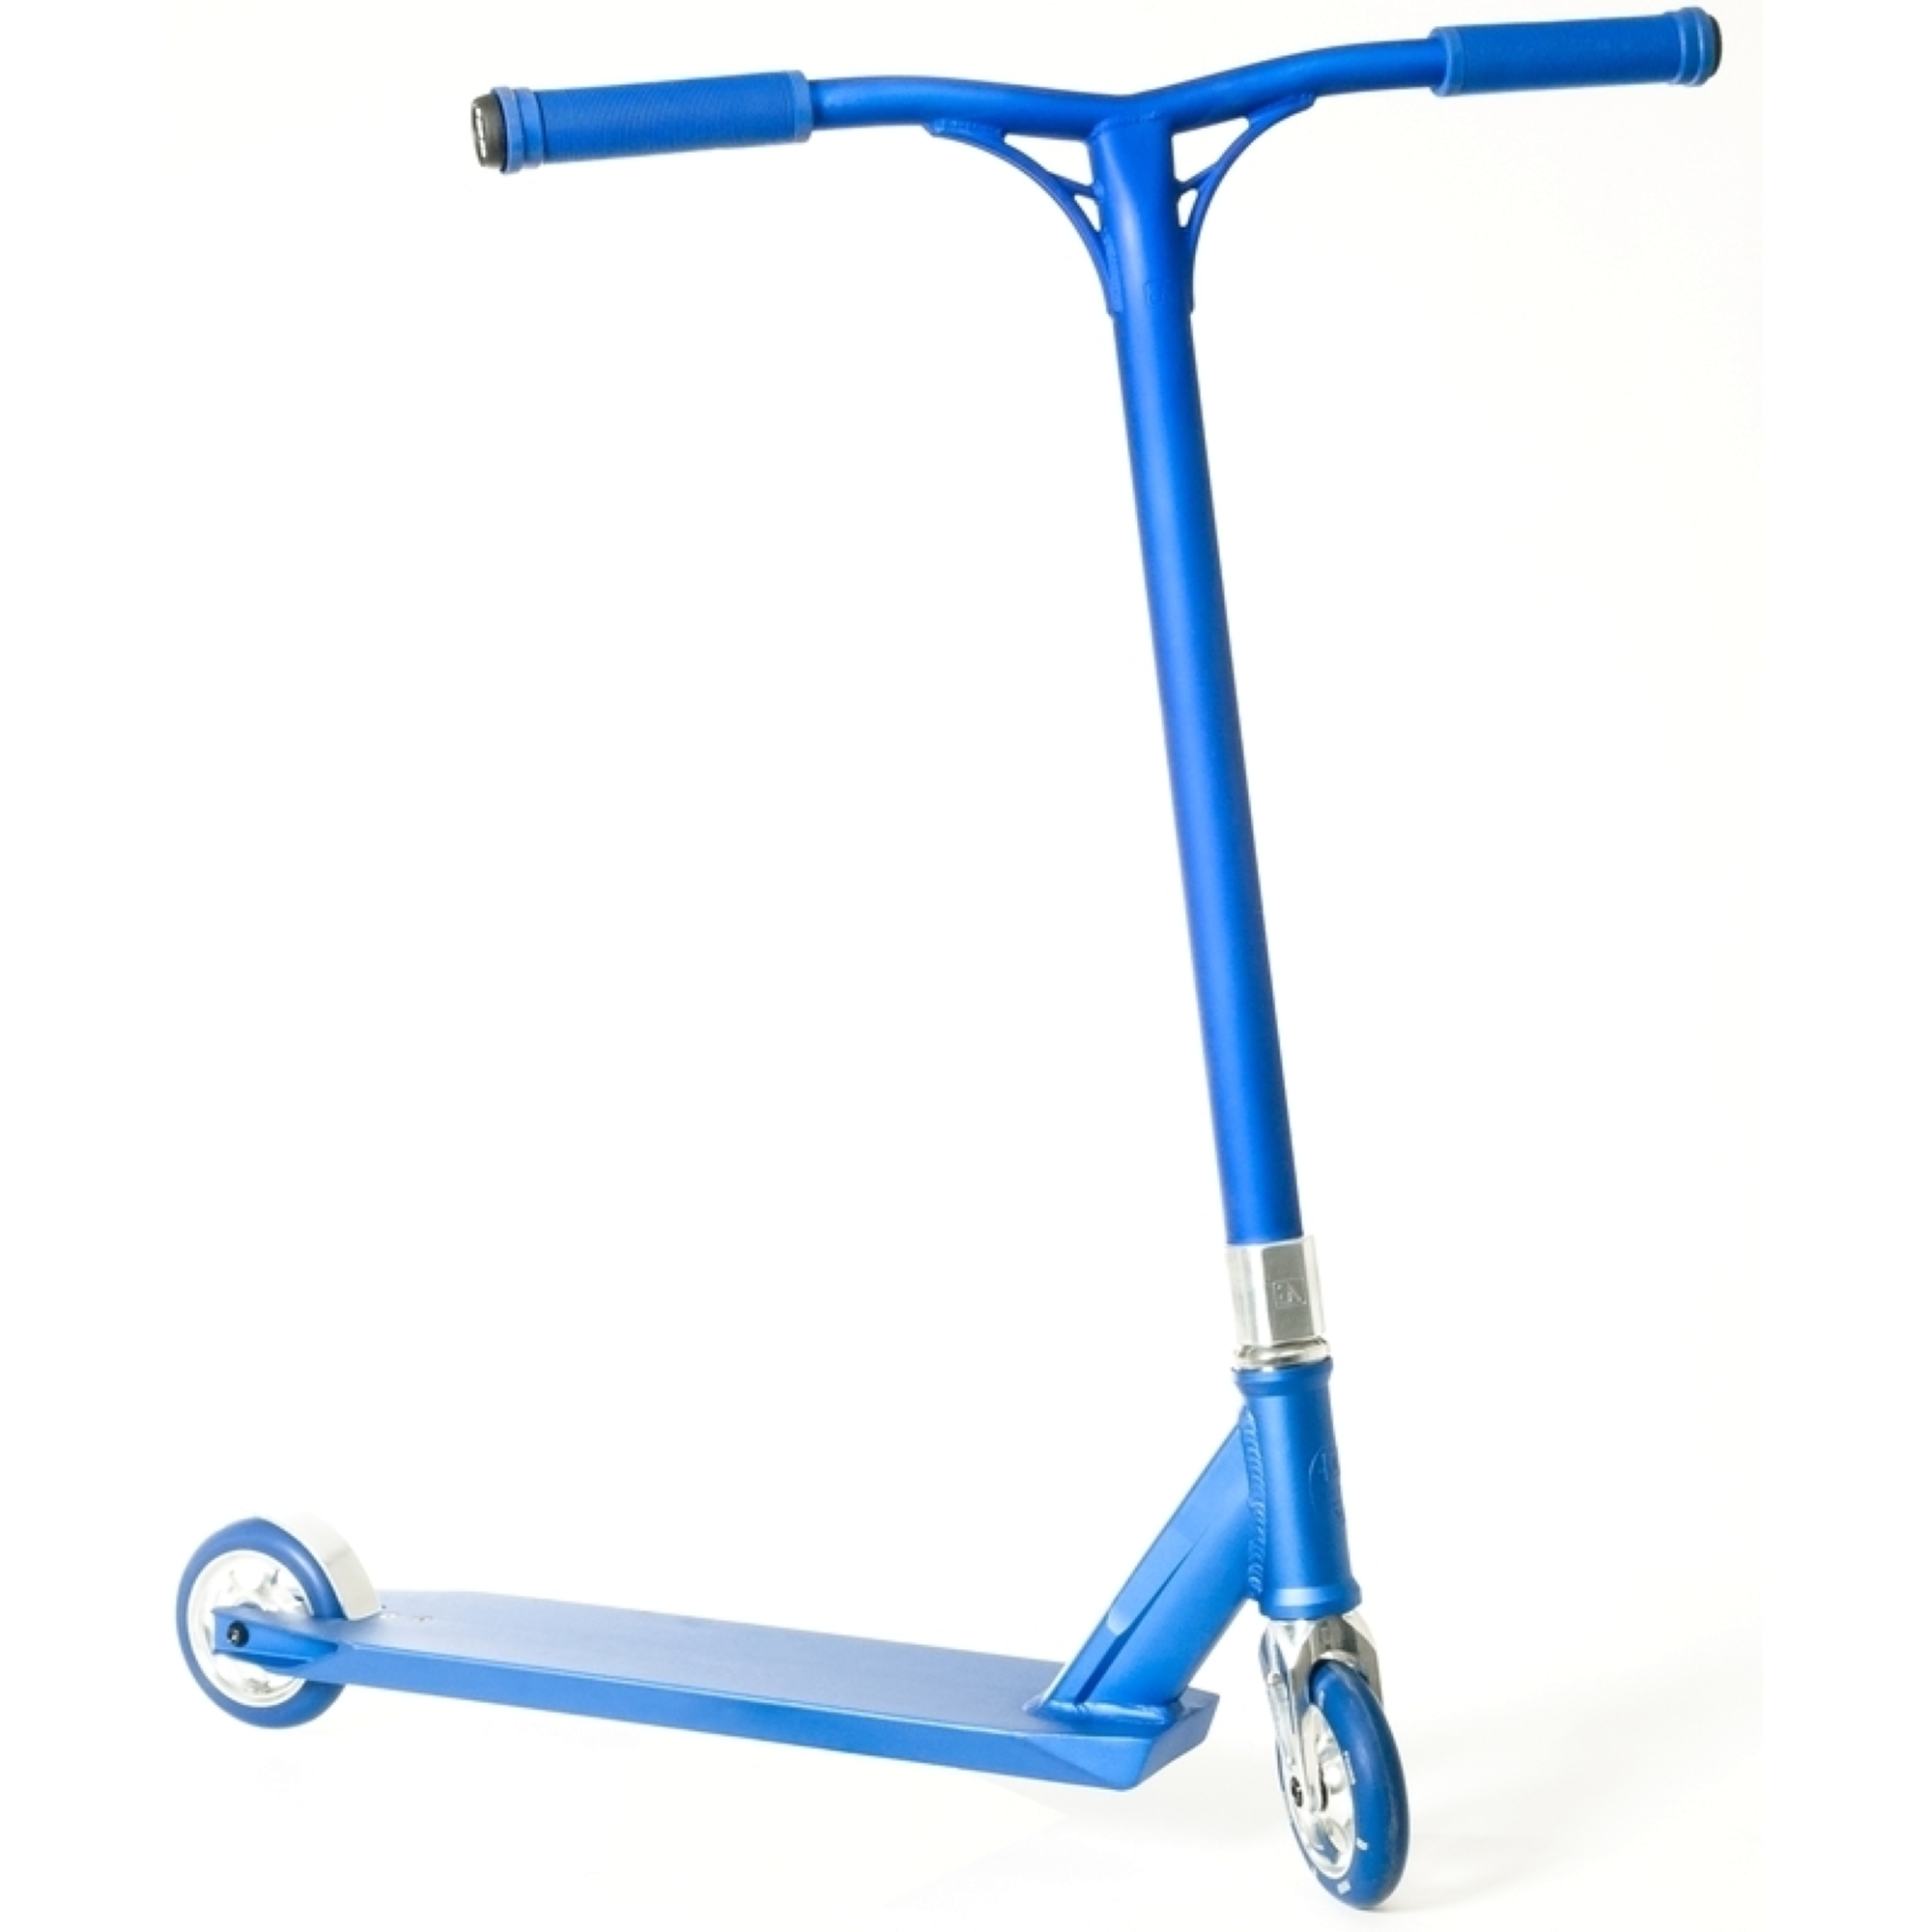 Stunt Scooter Clipart.